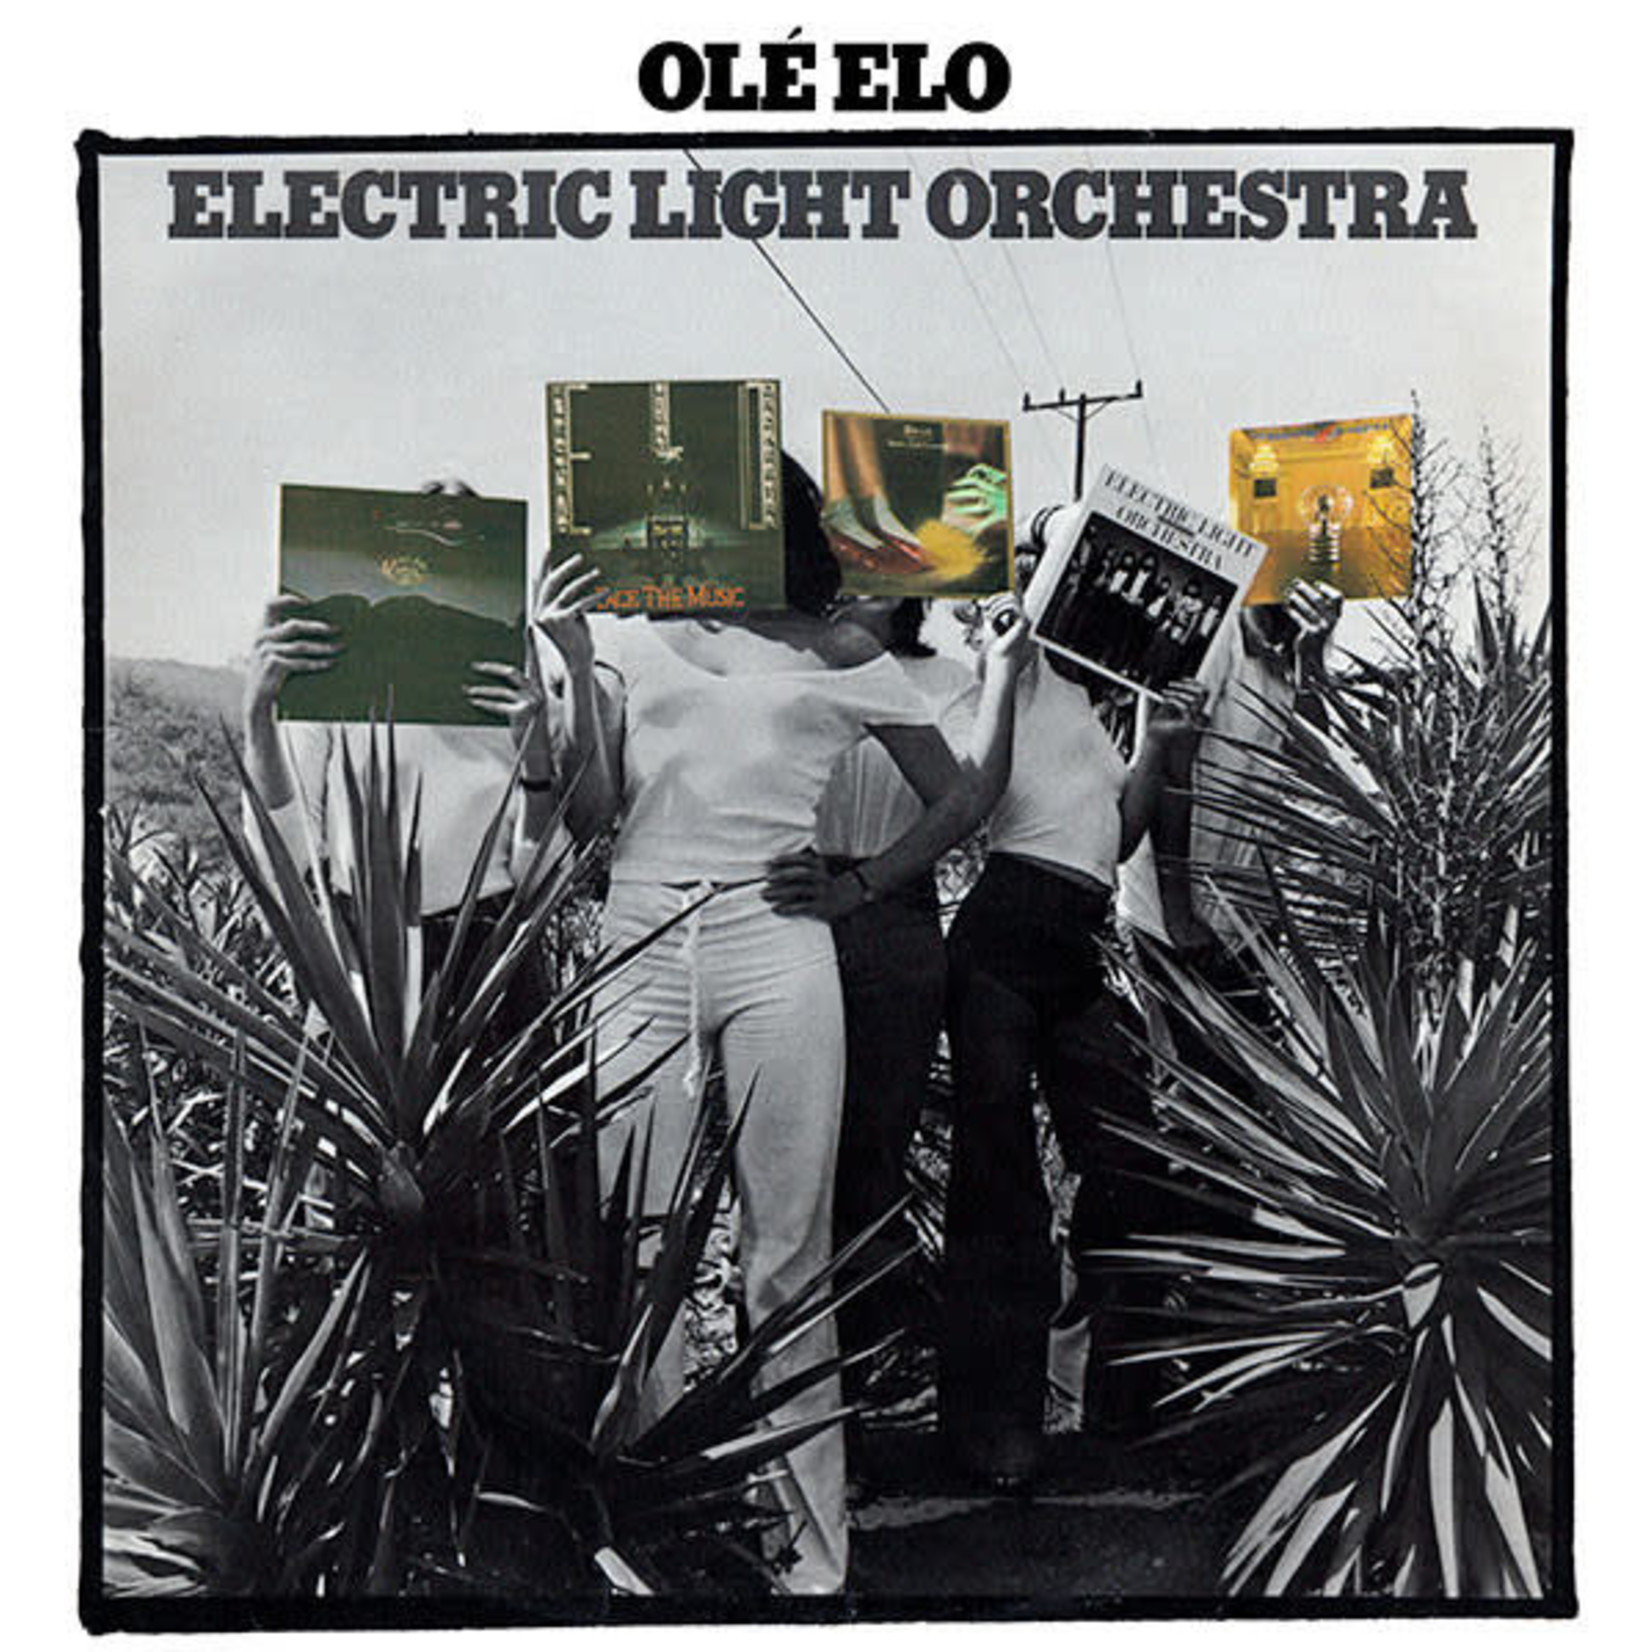 [Vintage] Electric Light Orchestra: Ole ELO